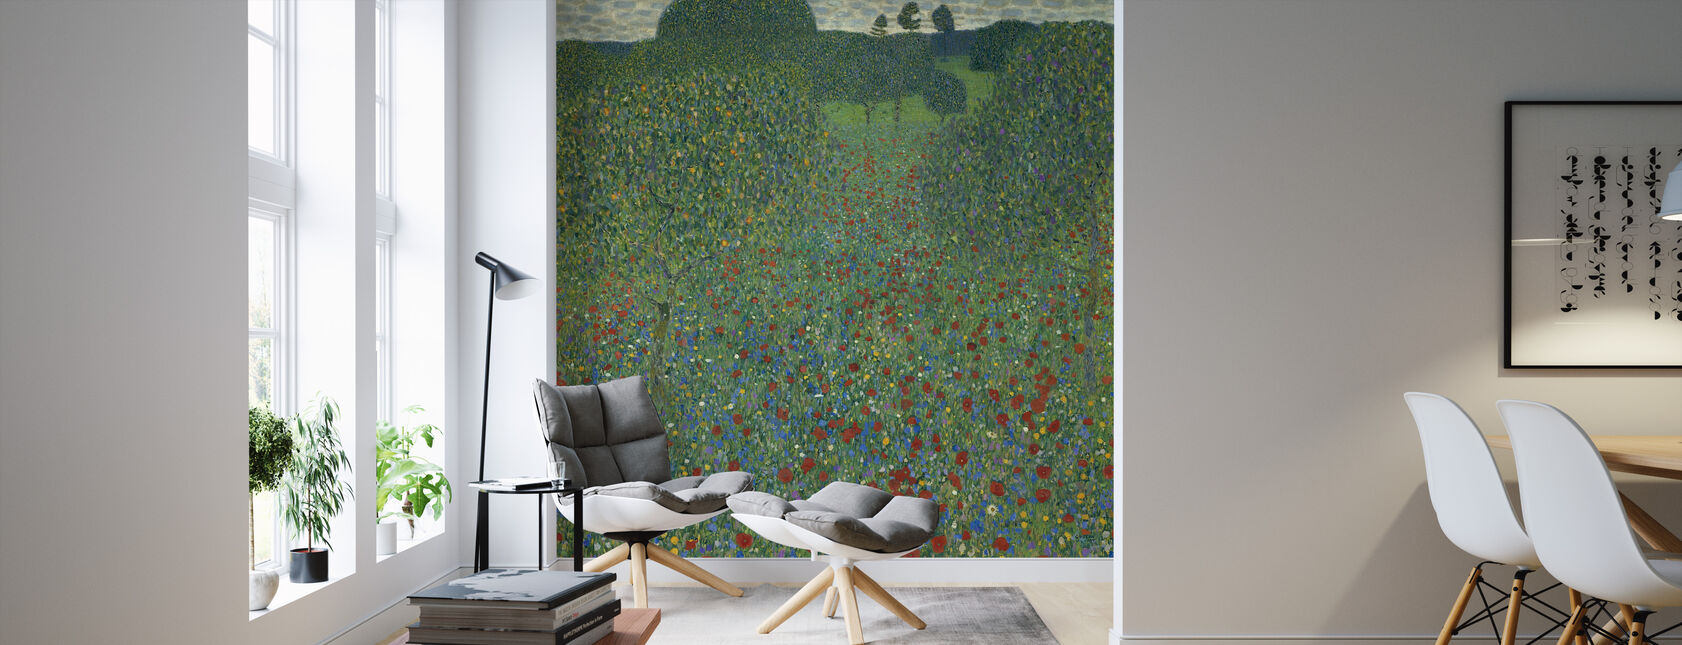 Klimt, Gustav - Field of Poppies - Wallpaper - Living Room